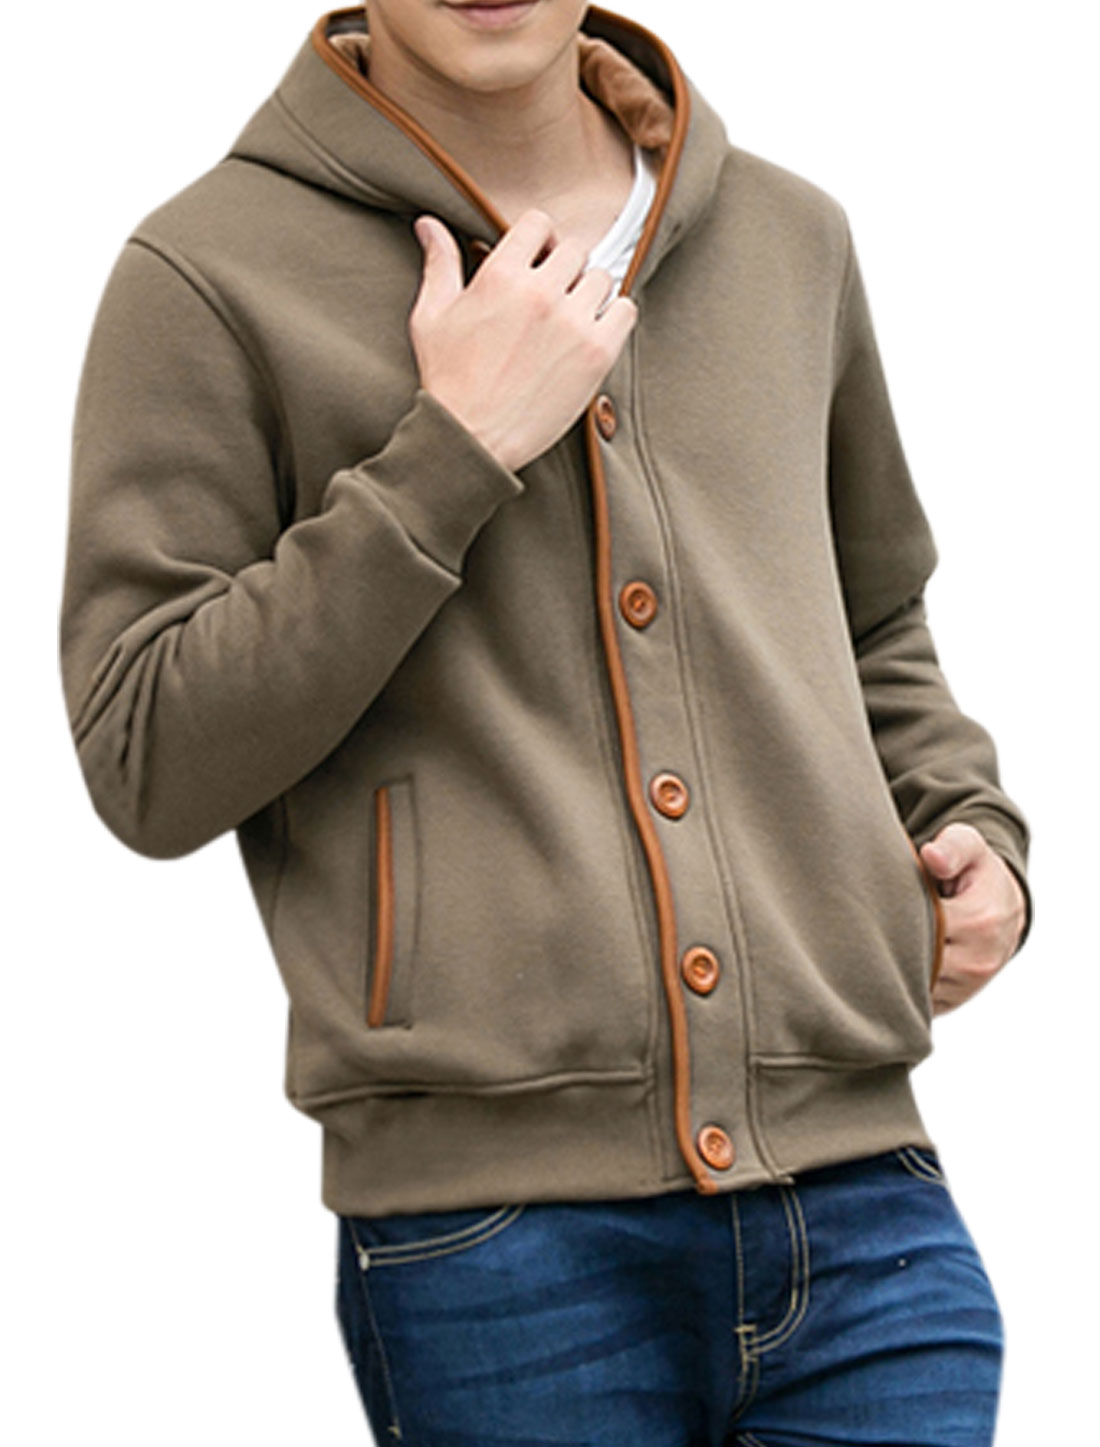 Man Long Sleeve Single Breasted Front Hooded Jacket Brown M